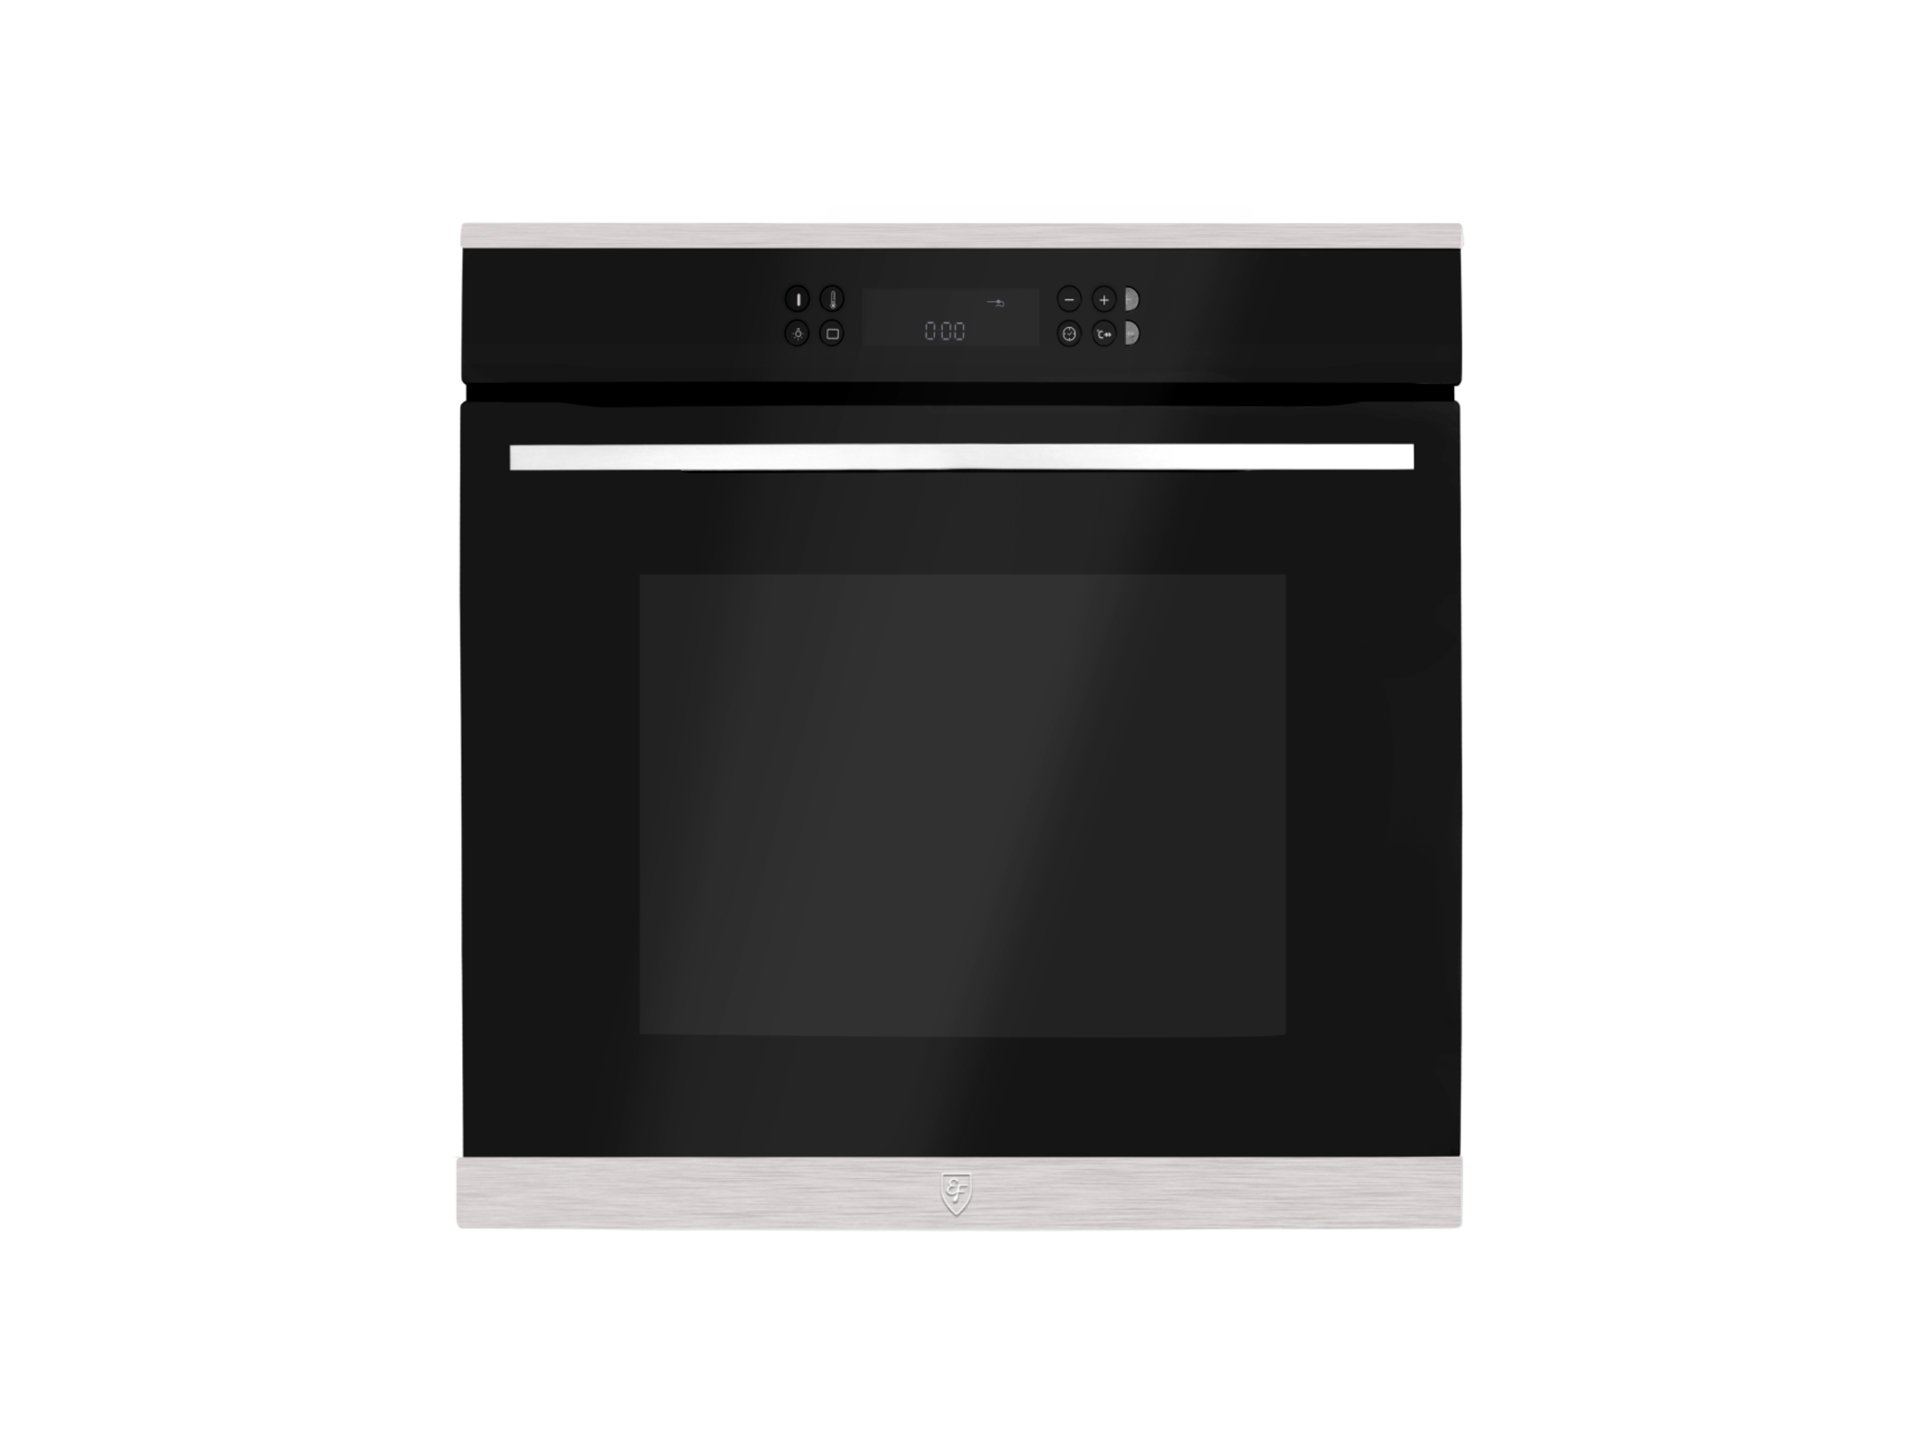 EF BO AE 102 A Multi-Function Oven